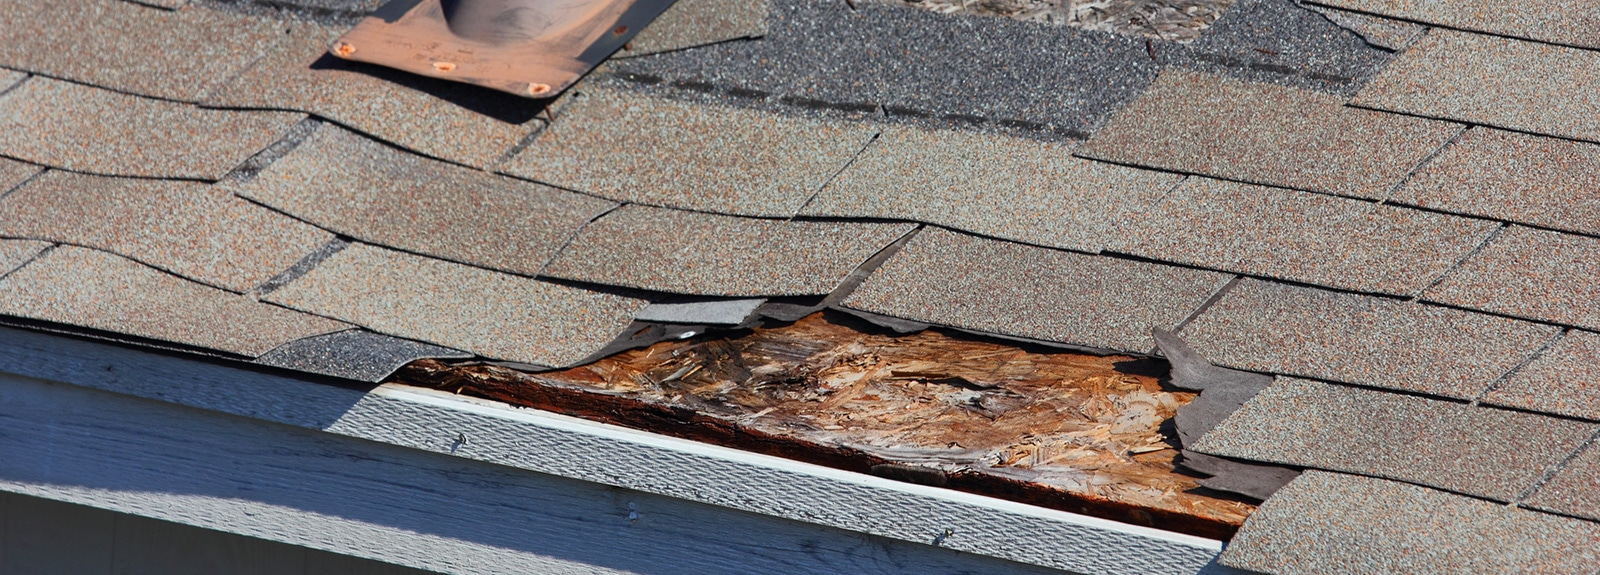 Roof Repair Gainesville Fl Mcfall Roofers